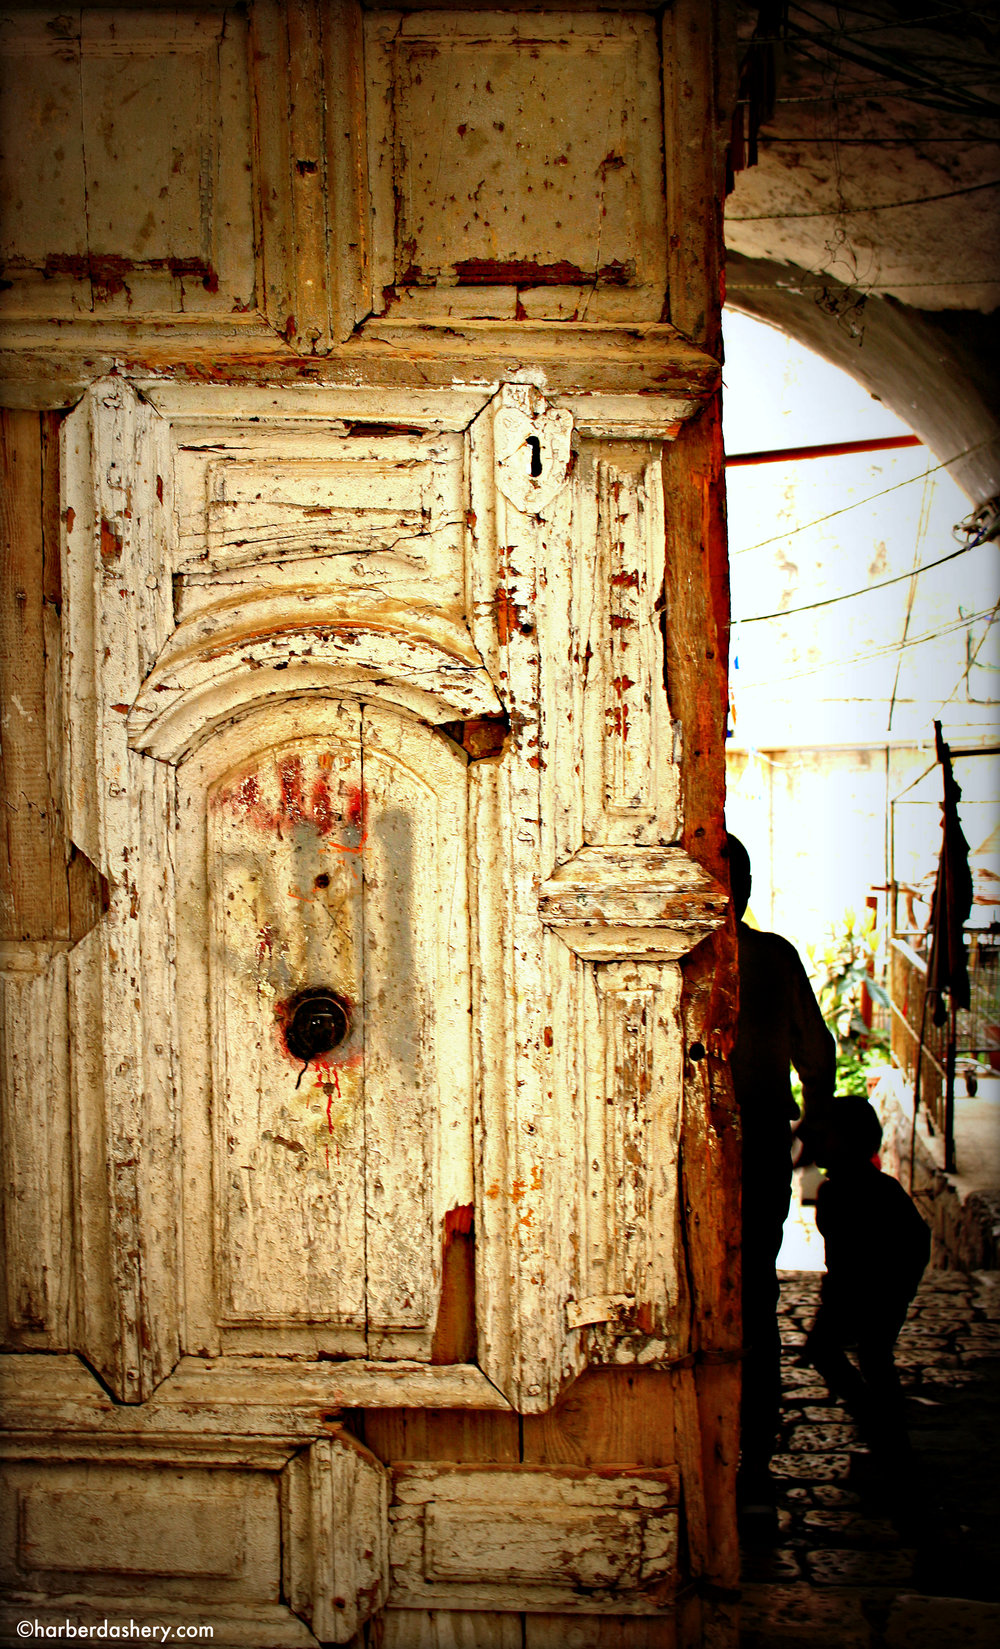 Door through Path of Old City